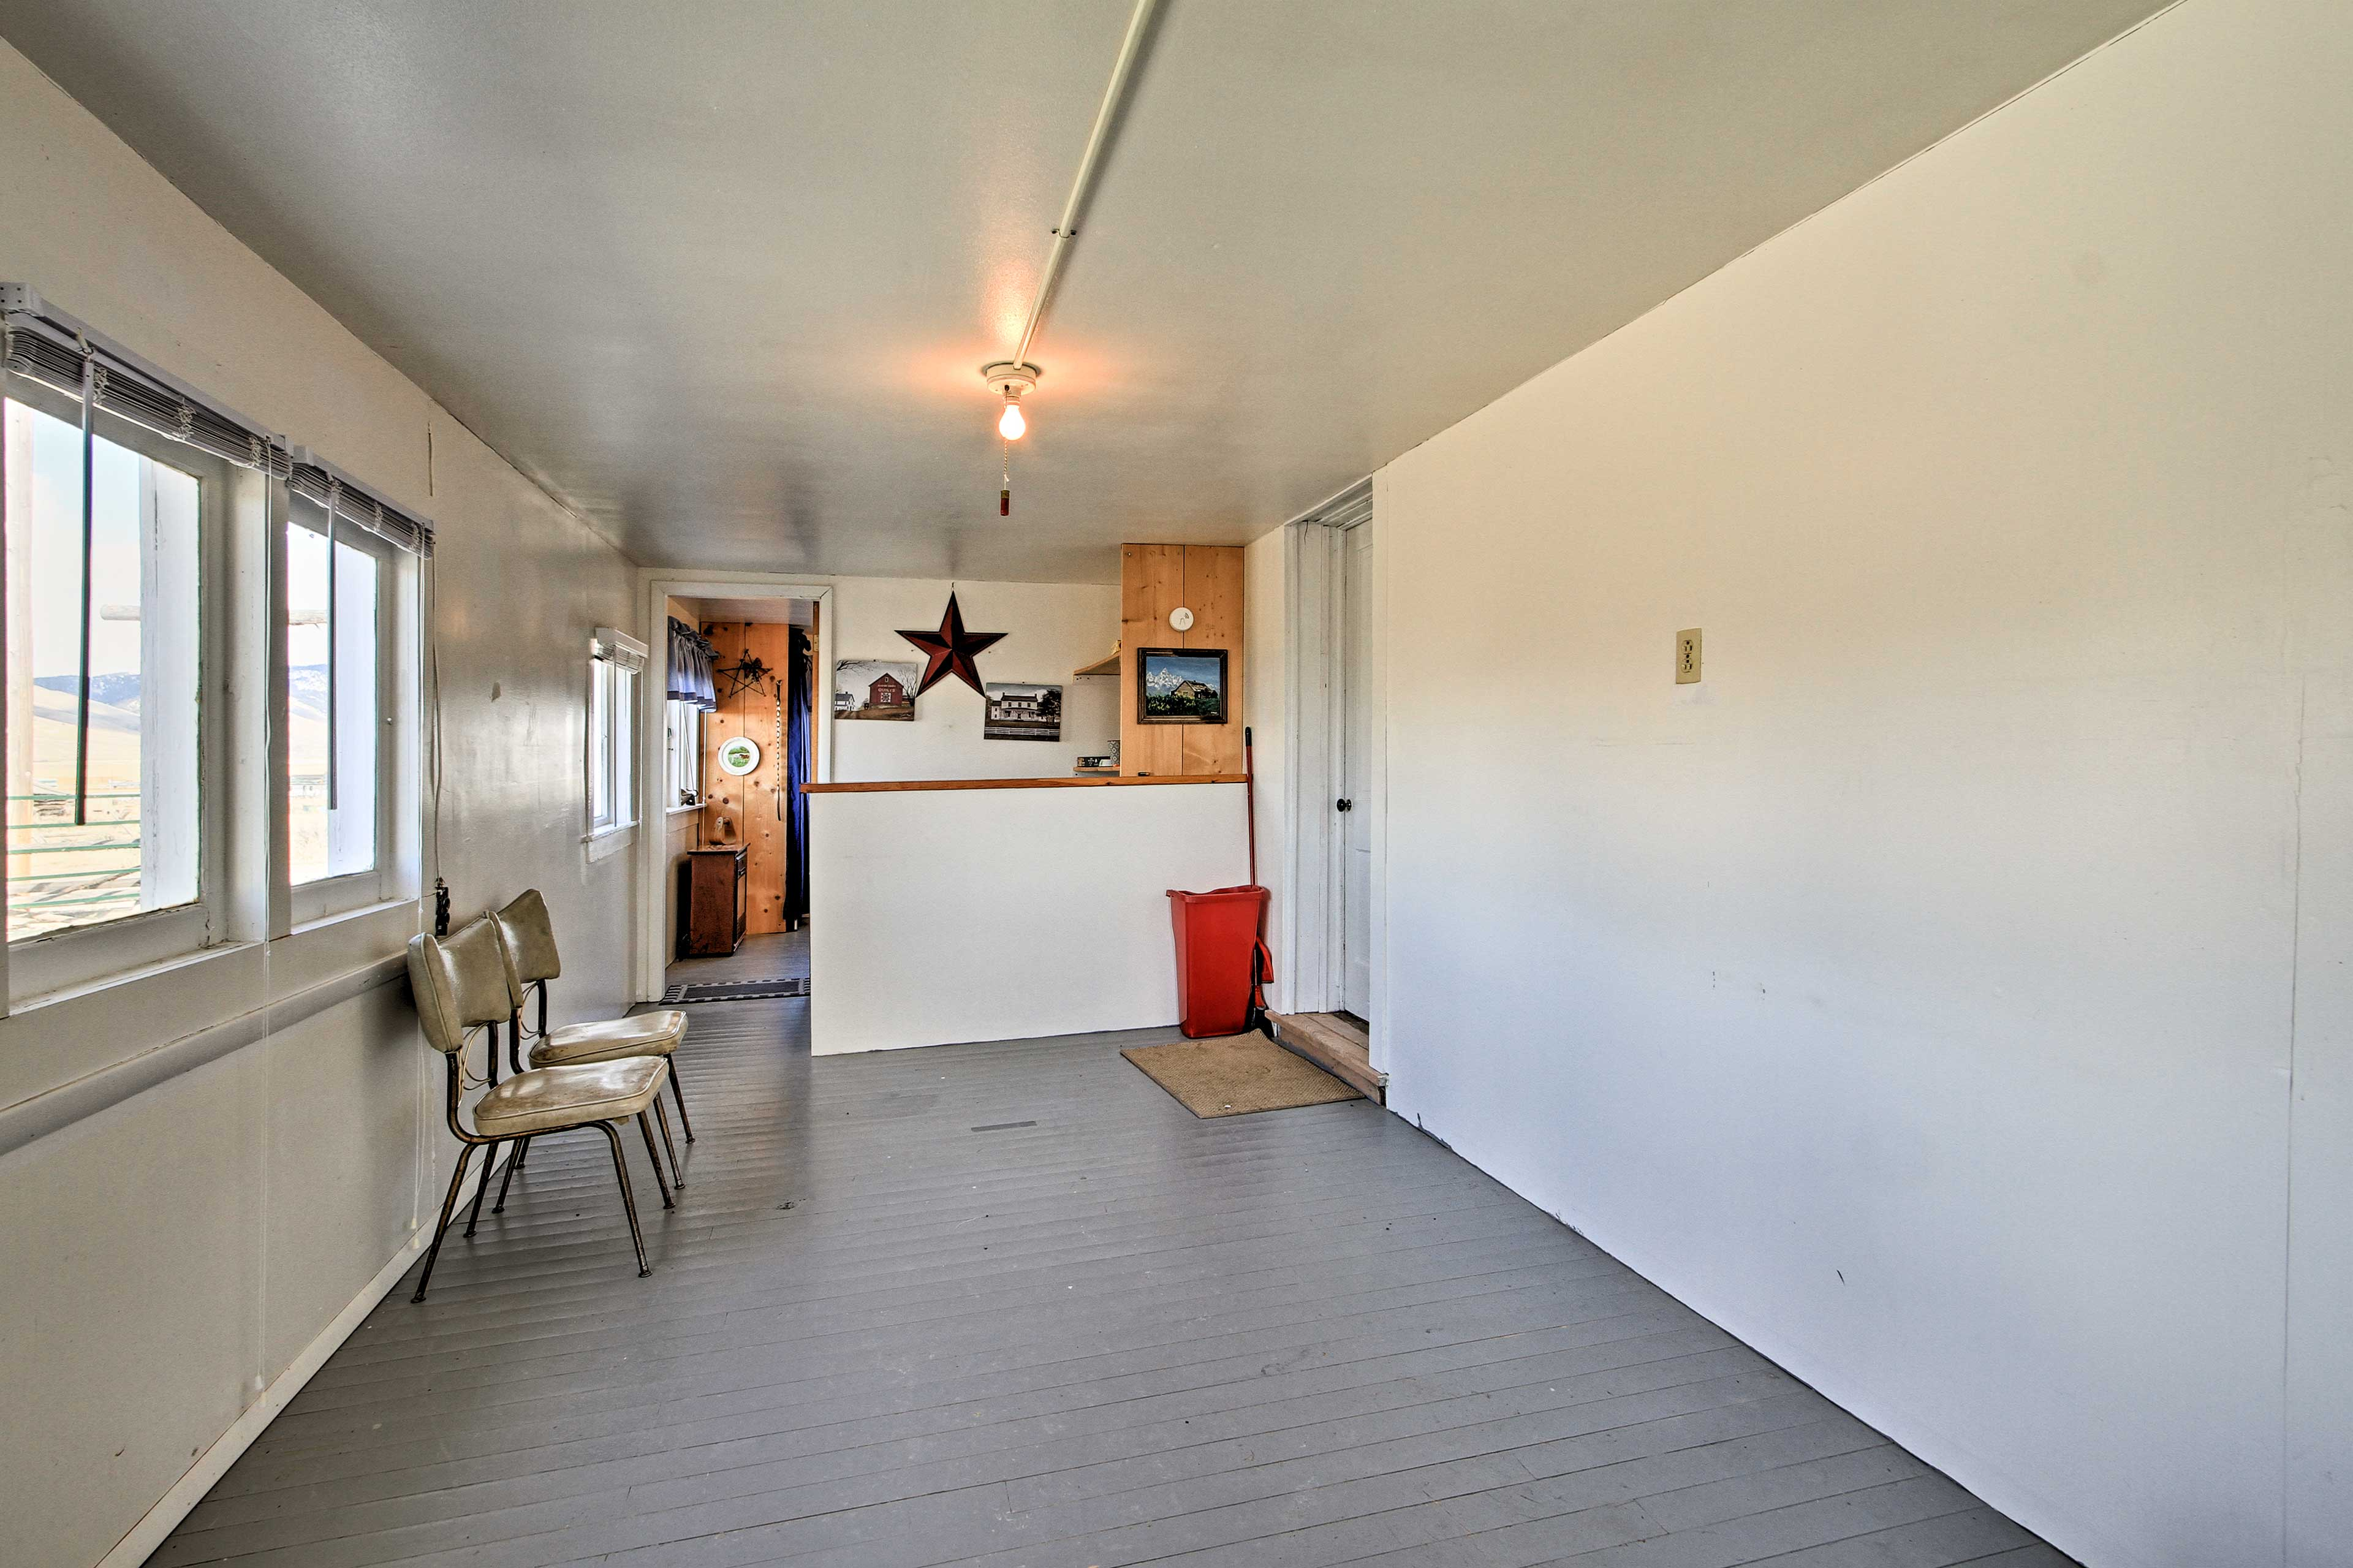 Host the party of the year at this spacious abode!